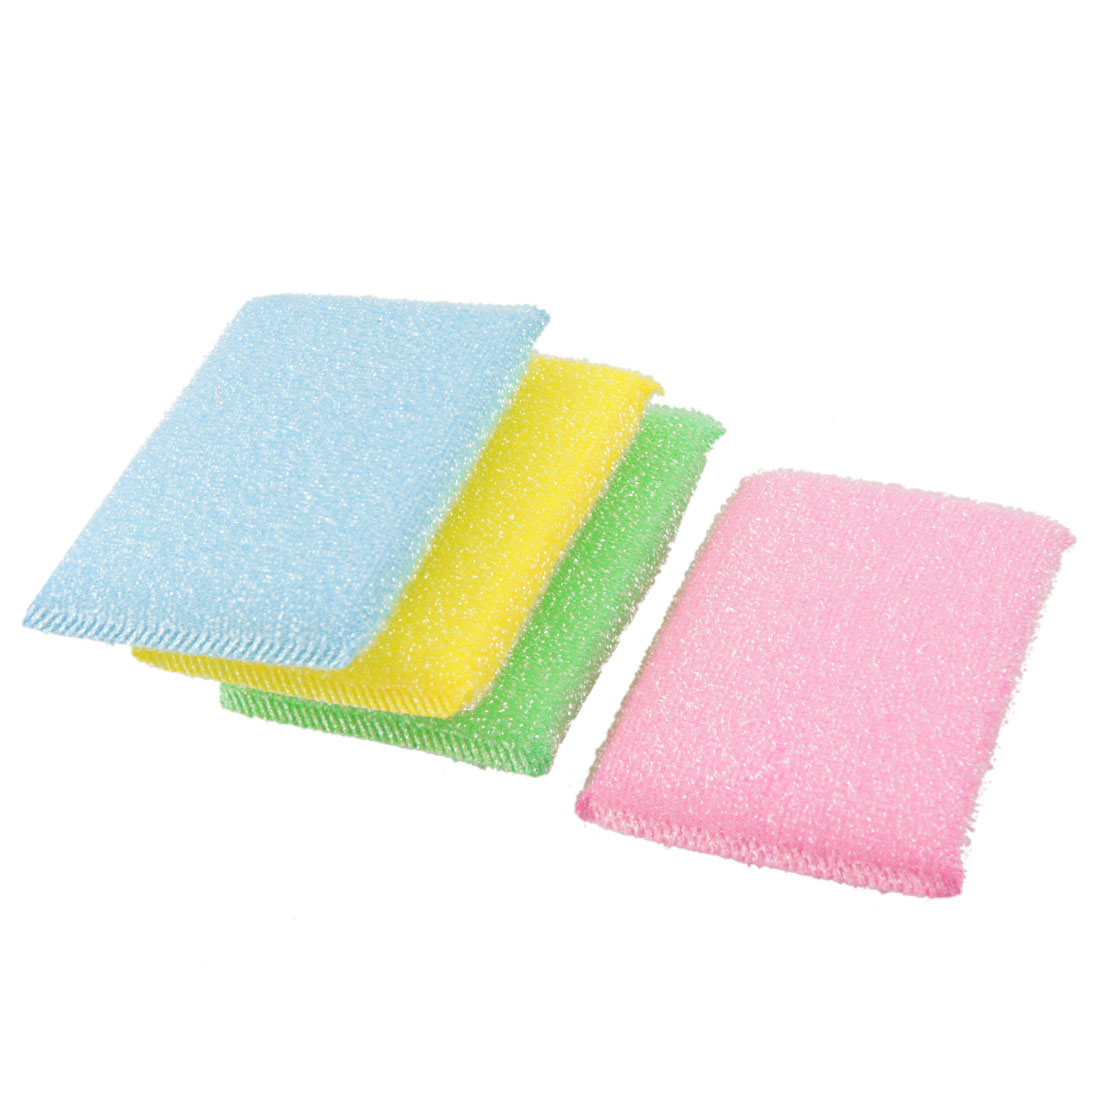 4 Pcs Assorted Color Scrub Sponge Padded Dish Pad Bowl Cup Cleaner